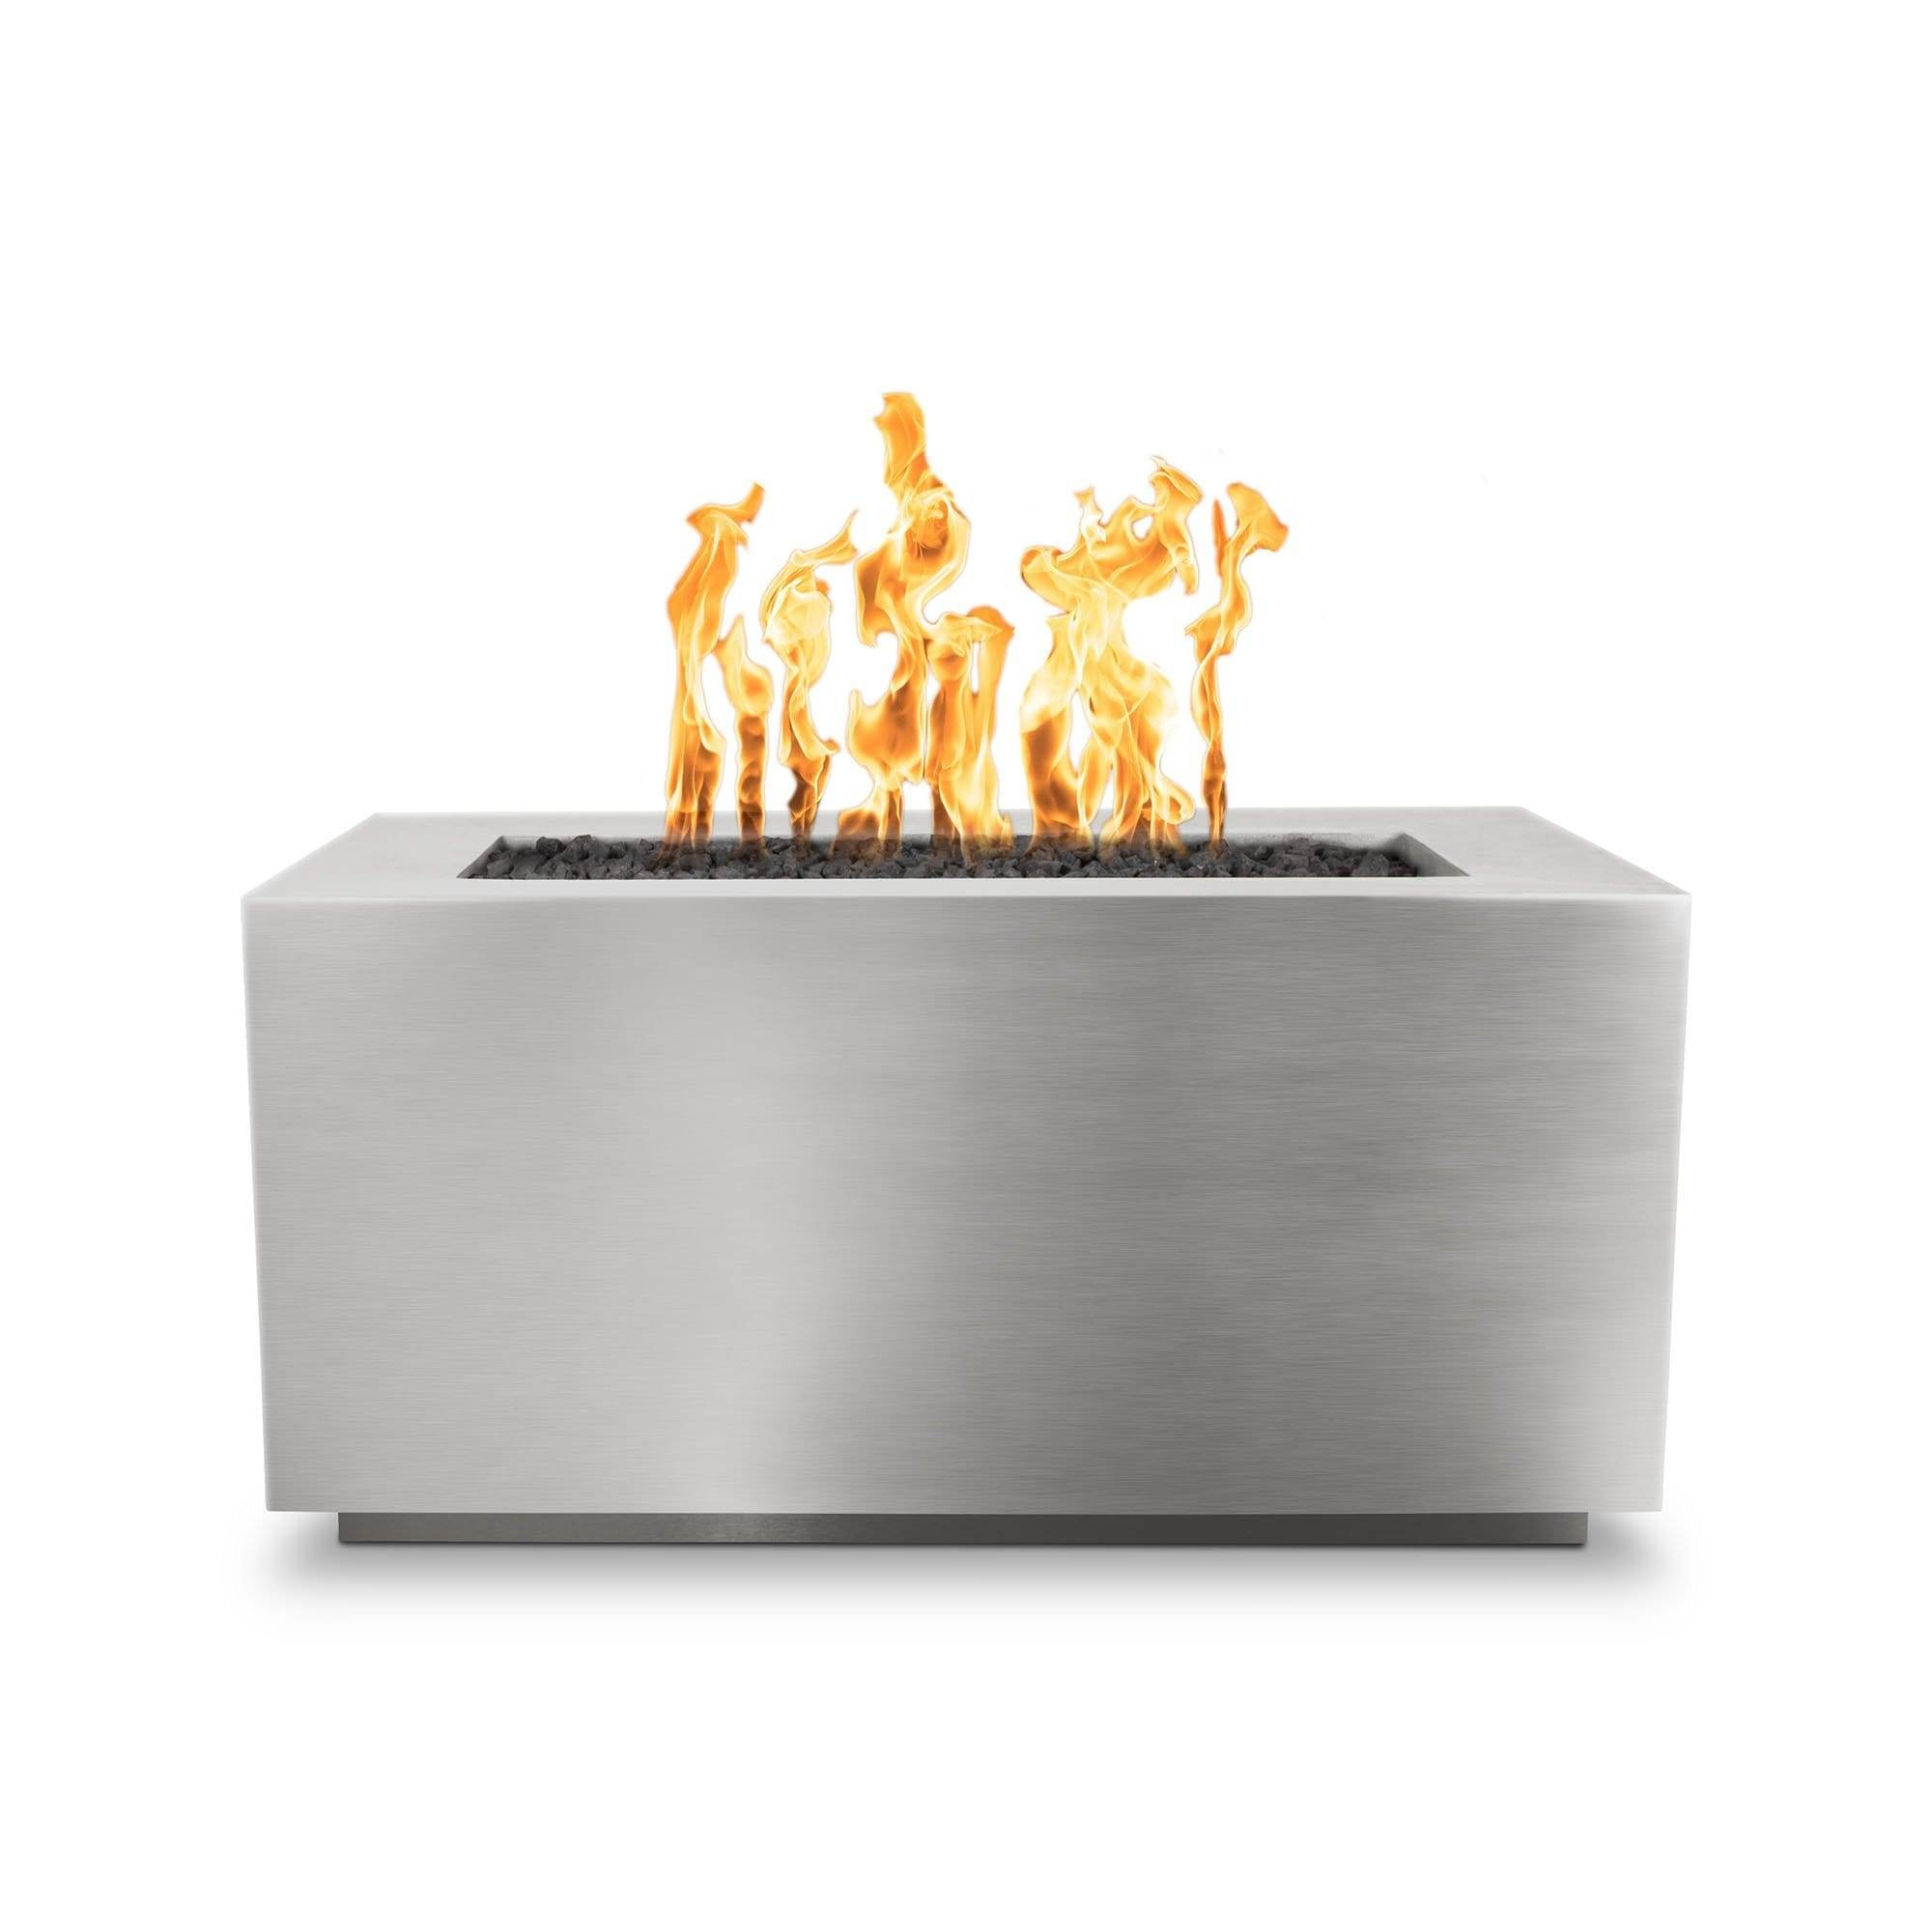 The Outdoor Plus Pismo Metal Fire Pit OPT-R8424 Fire Pit The Outdoor Plus Stainless Steel Electronic Ignition Natural Gas